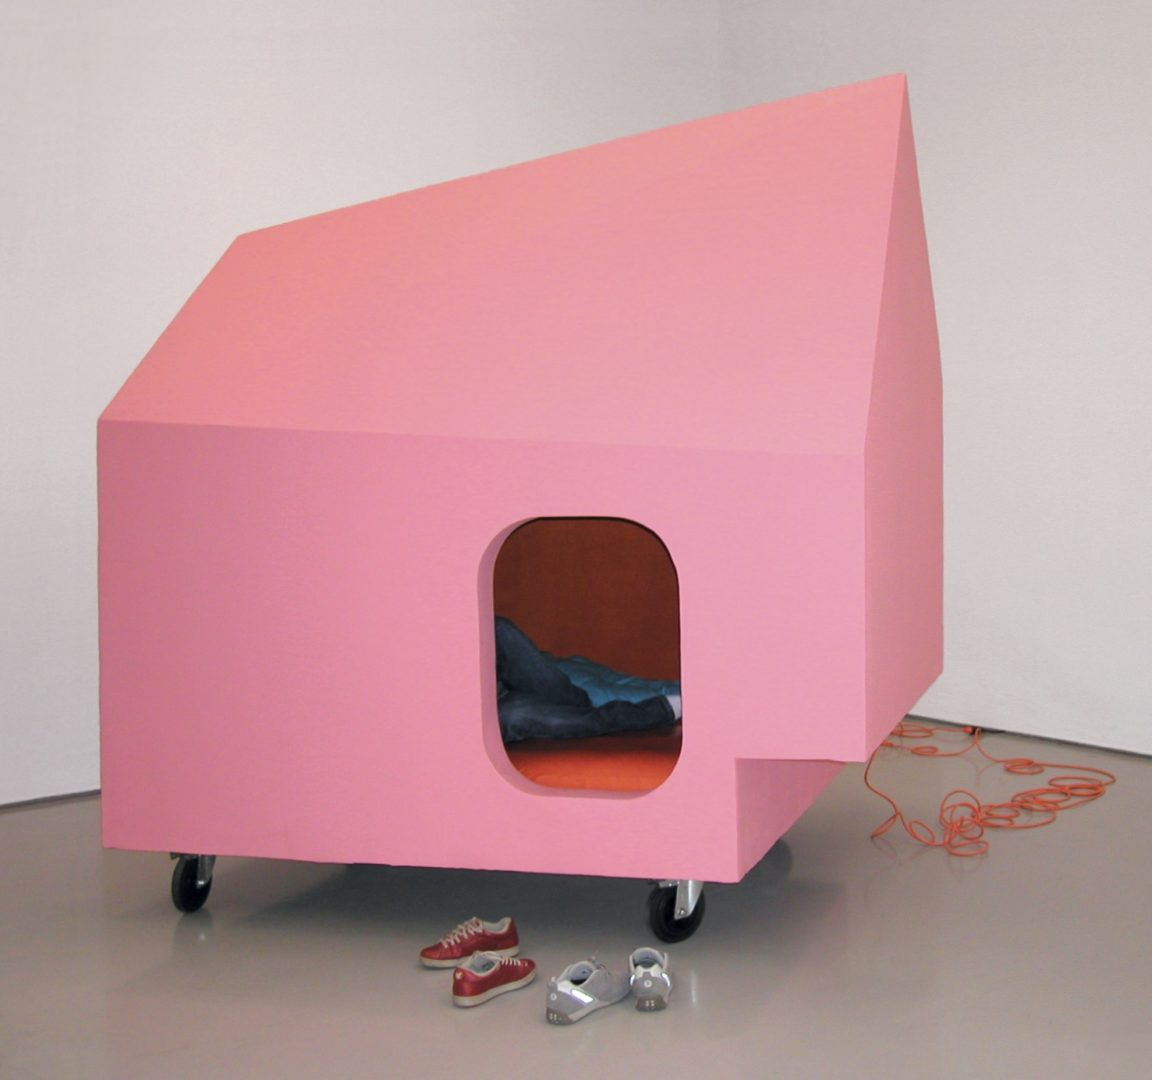 Jeanne Susplugas, Pink house, 2002, mixed media. © Jeanne Susplugas